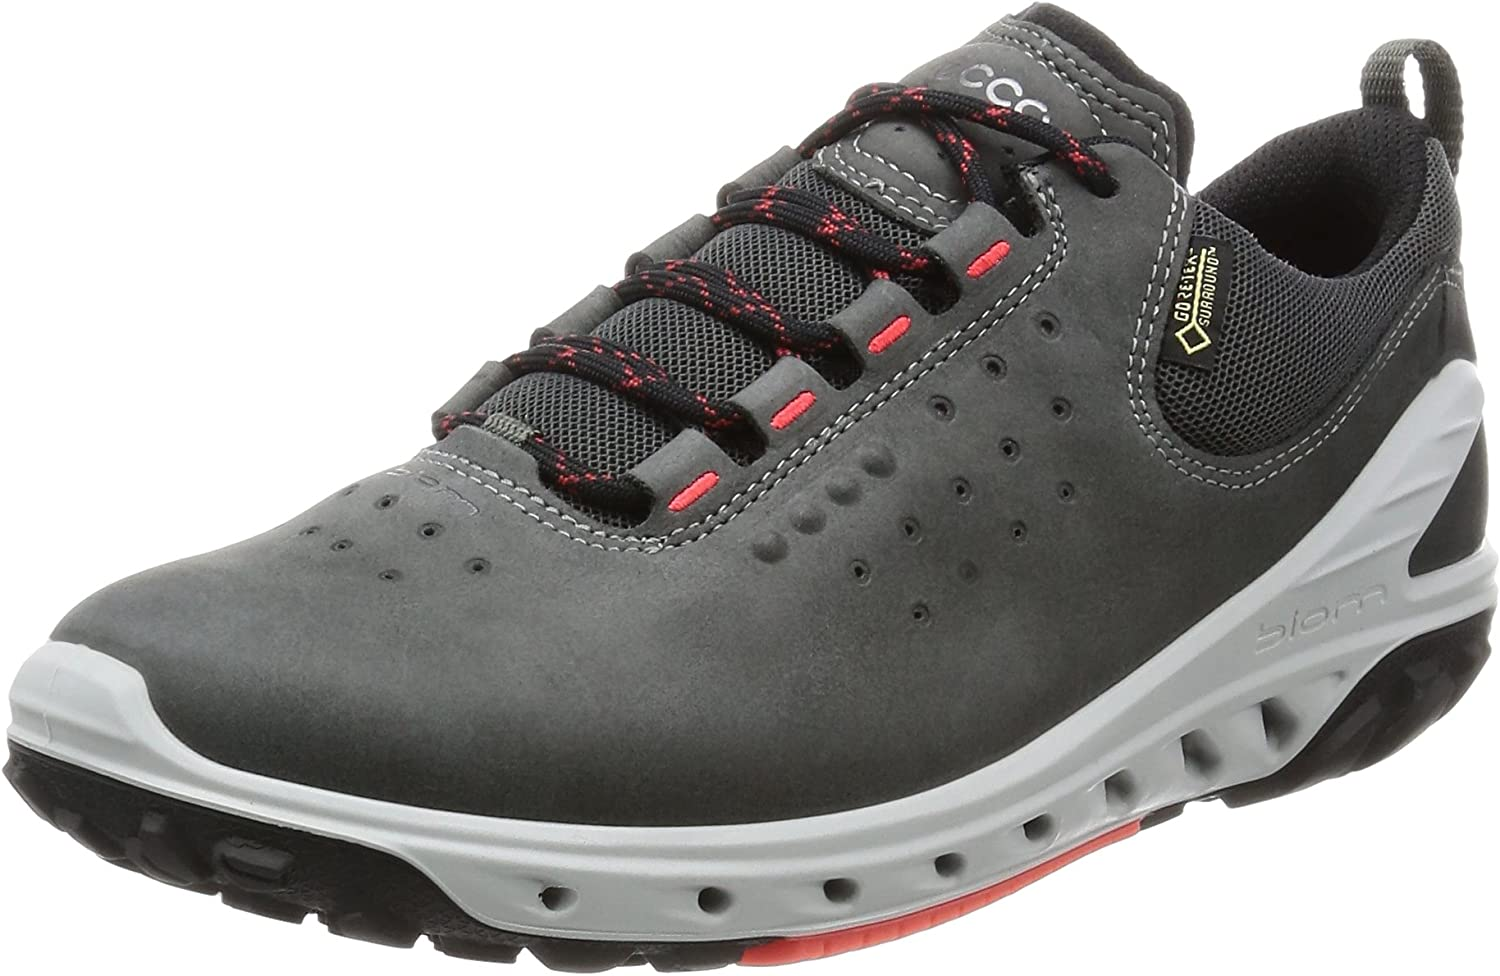 ECCO Women's Biom Venture Gore-Tex Tie hiking shoes